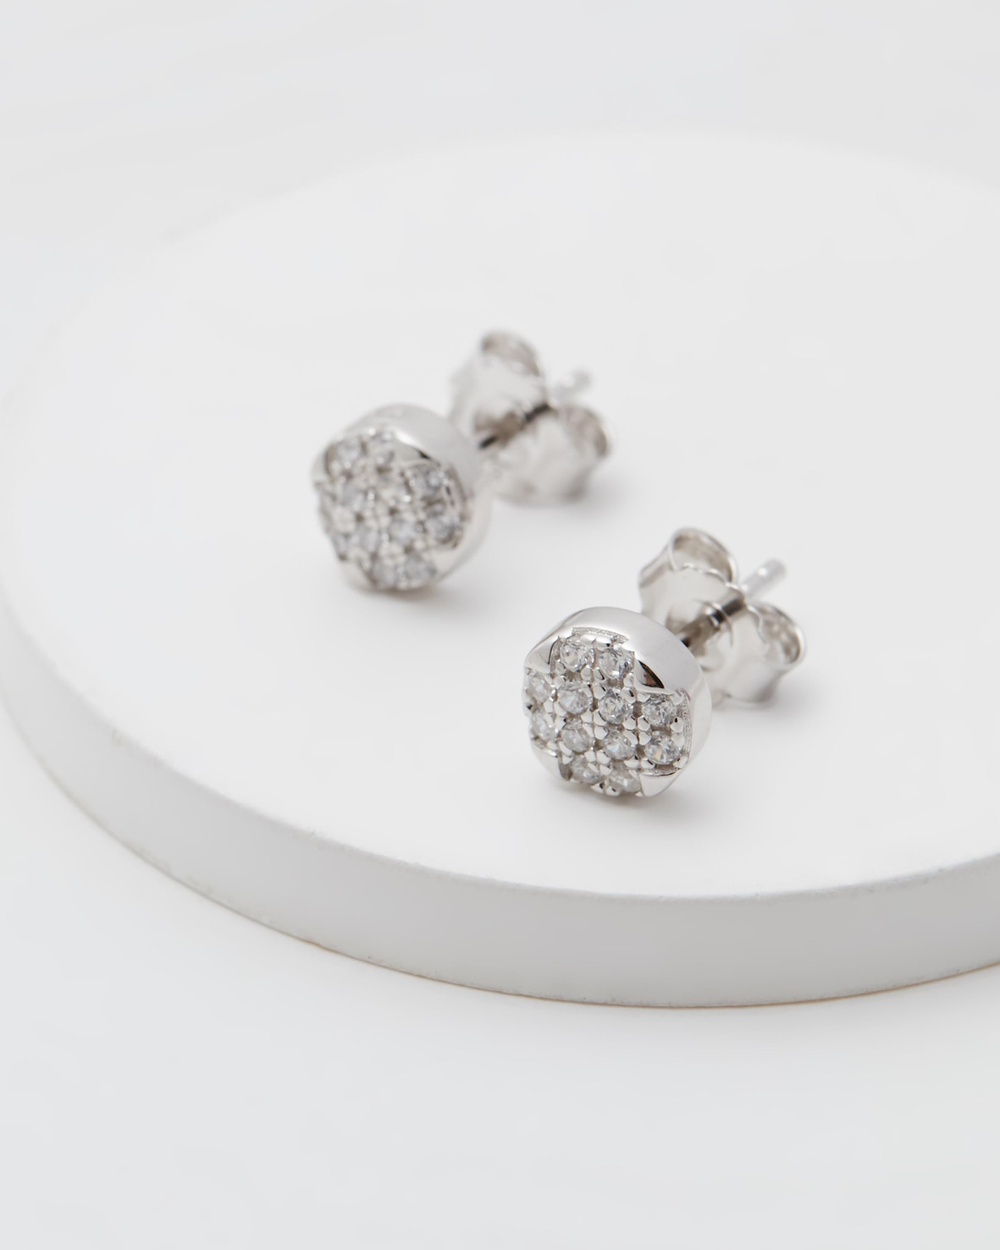 Michael Hill Round Stud Earrings with Luxe Cubic Zirconia Jewellery Sterling Silver